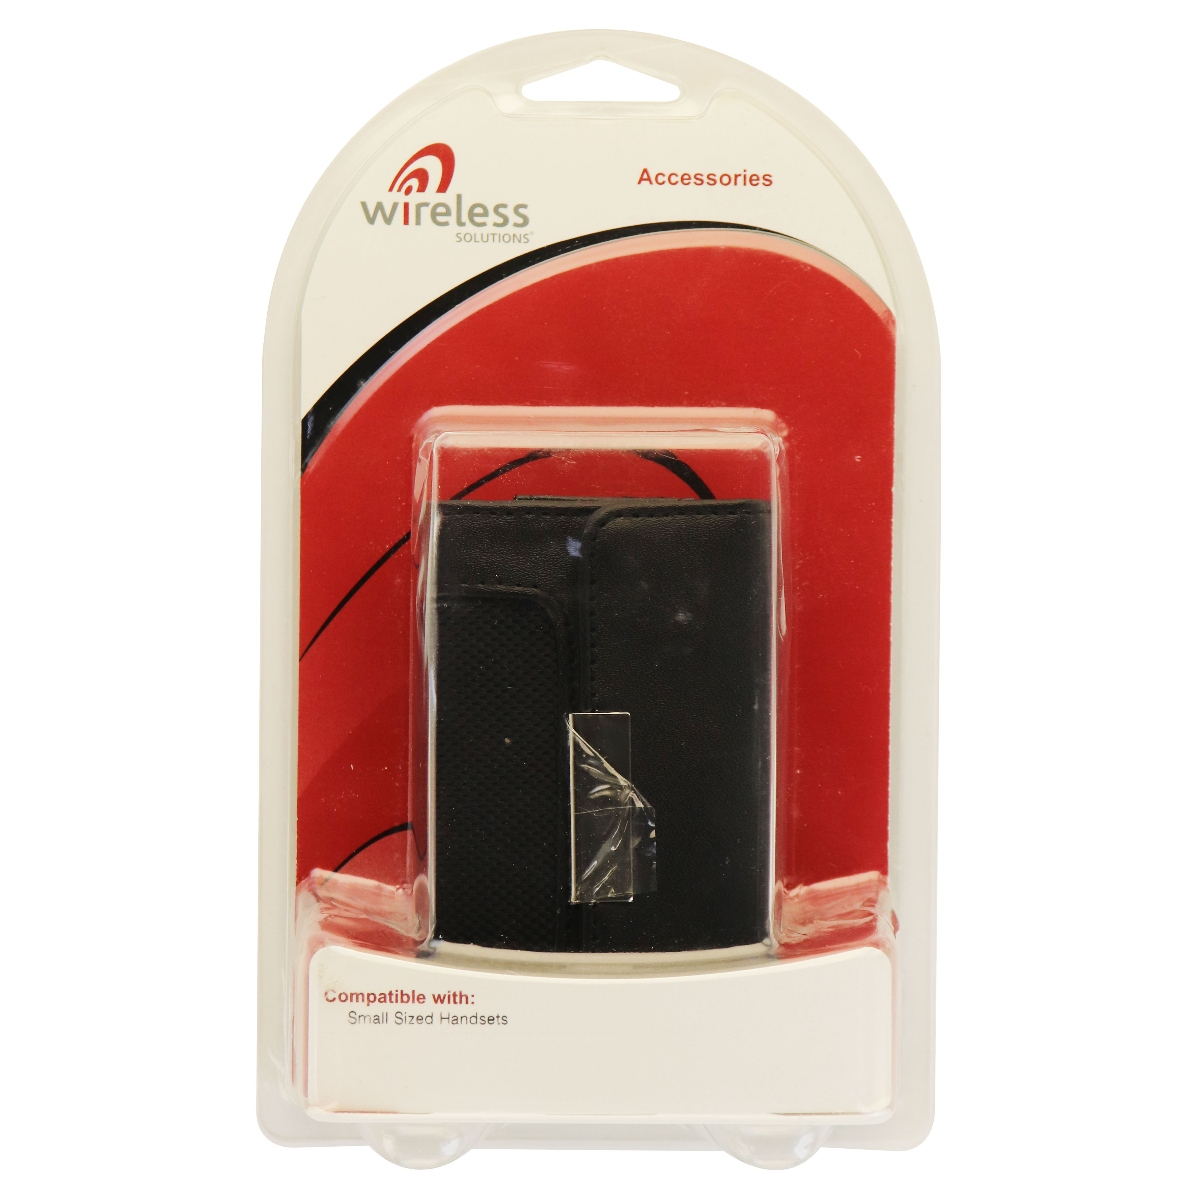 Wireless Solutions Accessories Case Pouch for Small Sized Handsets - Black